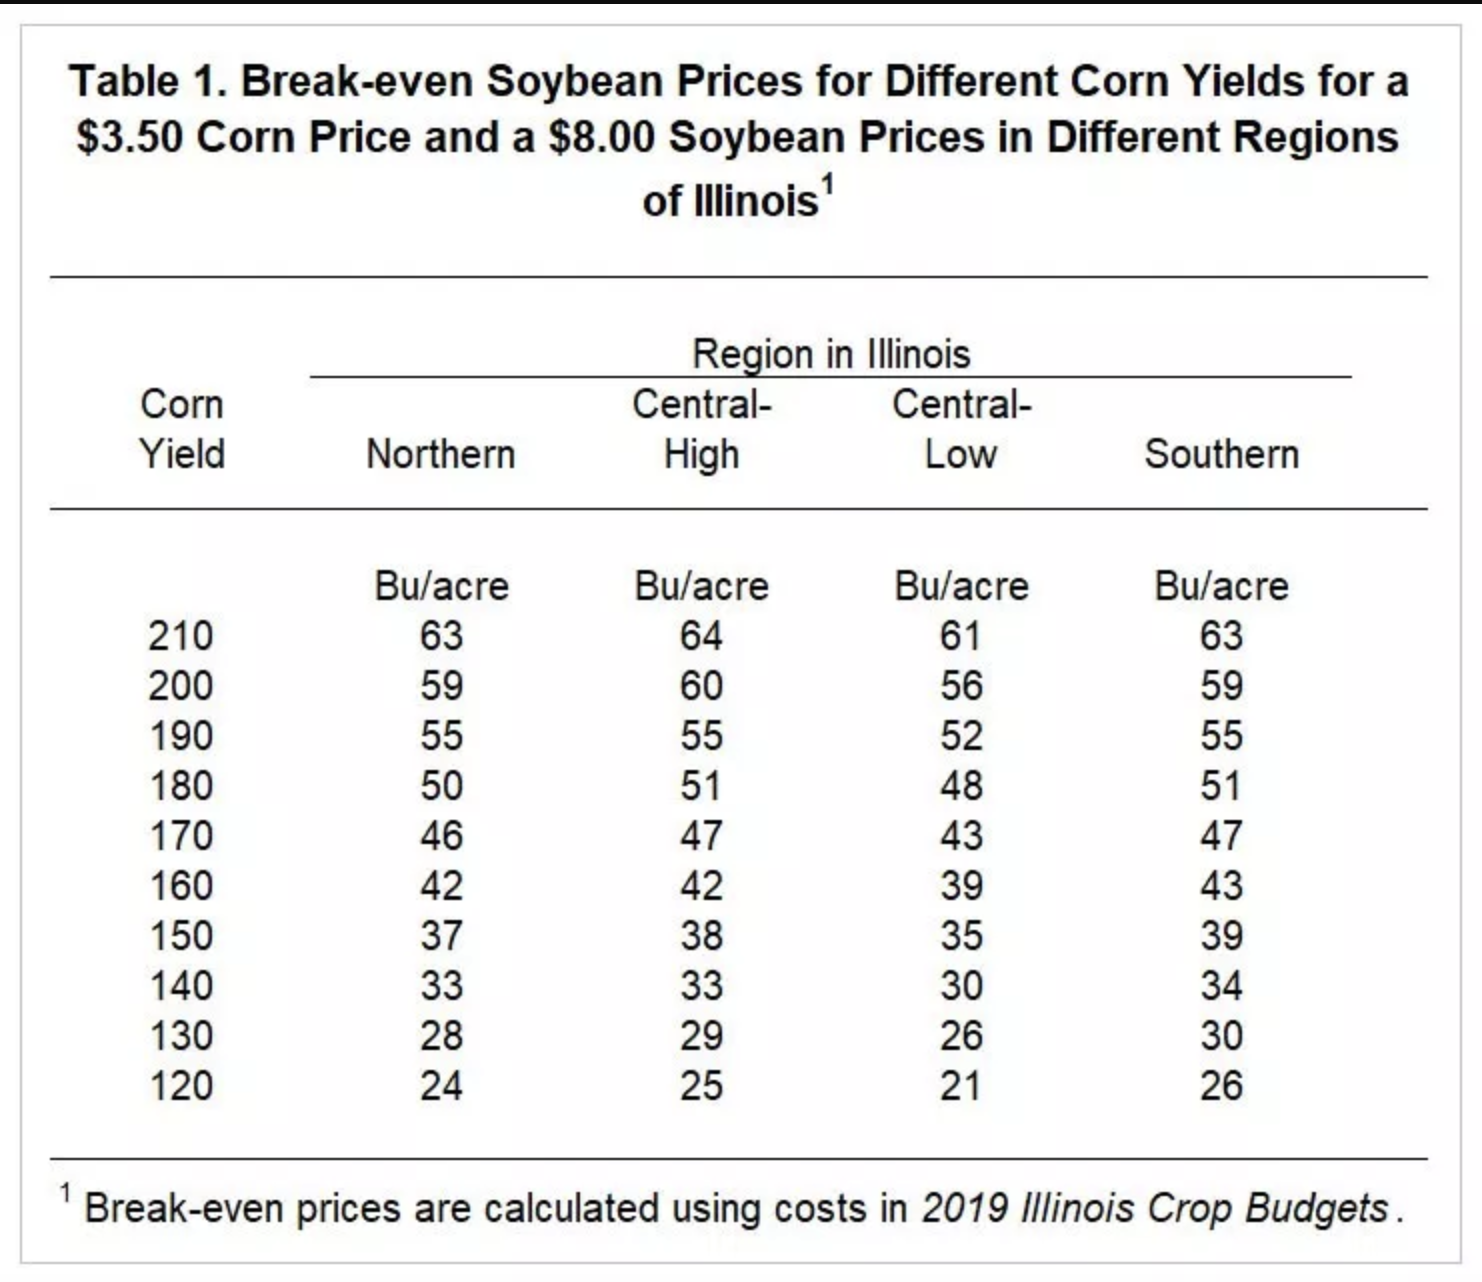 Midwest Corn, Soybeans: Making Late-Planting Decisions | No